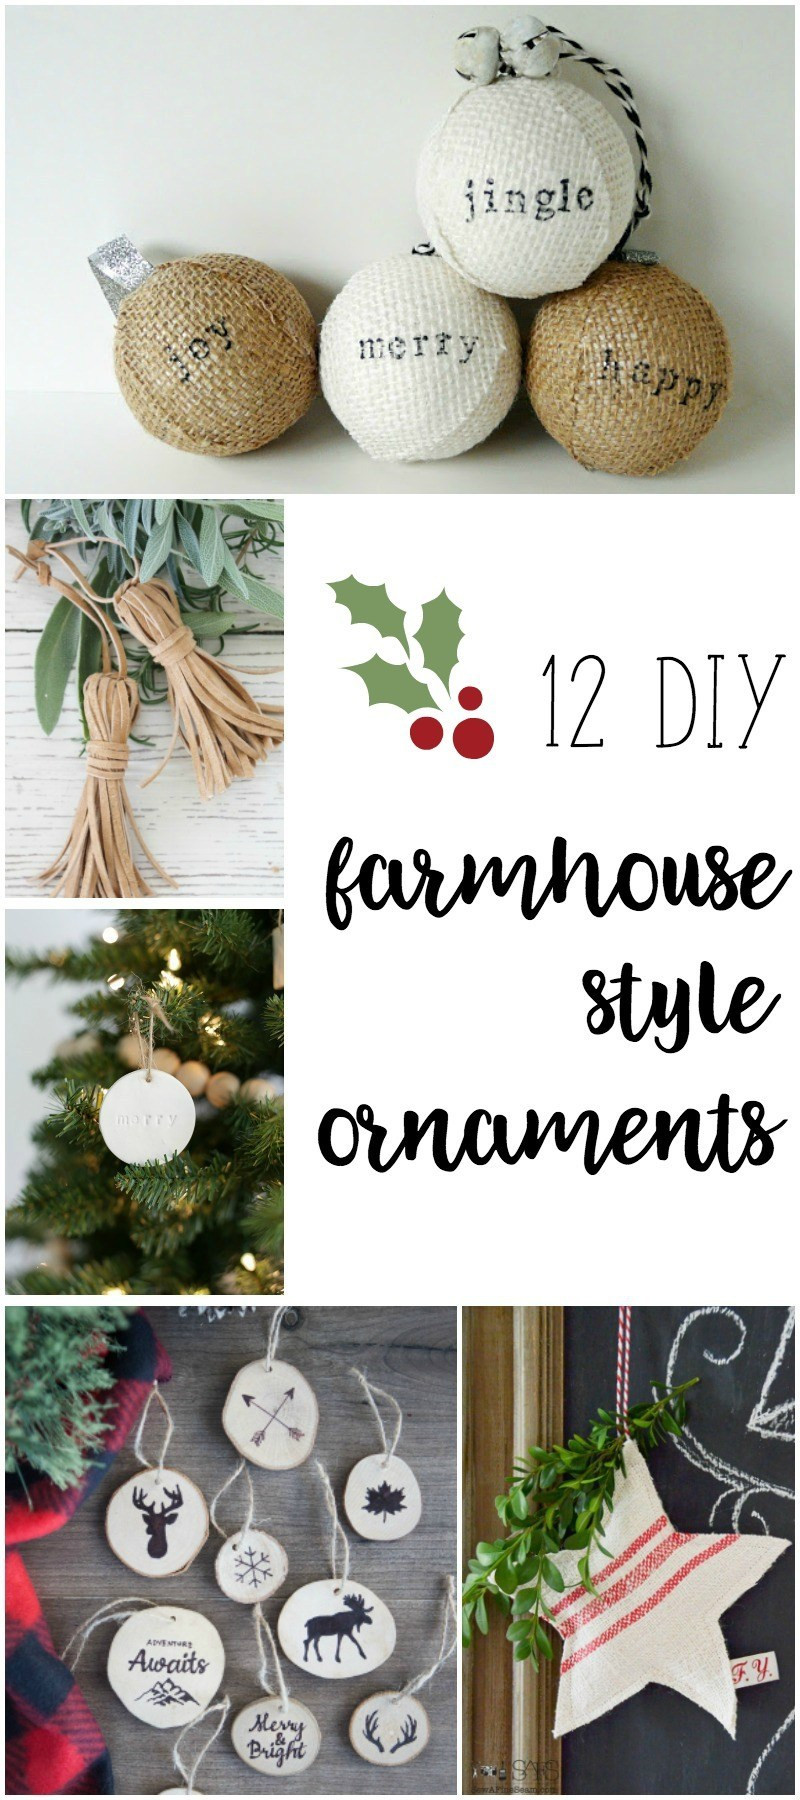 Best Of Farmhouse Style ornaments for Christmas Diy Xmas ornaments Of Amazing 50 Ideas Diy Xmas ornaments